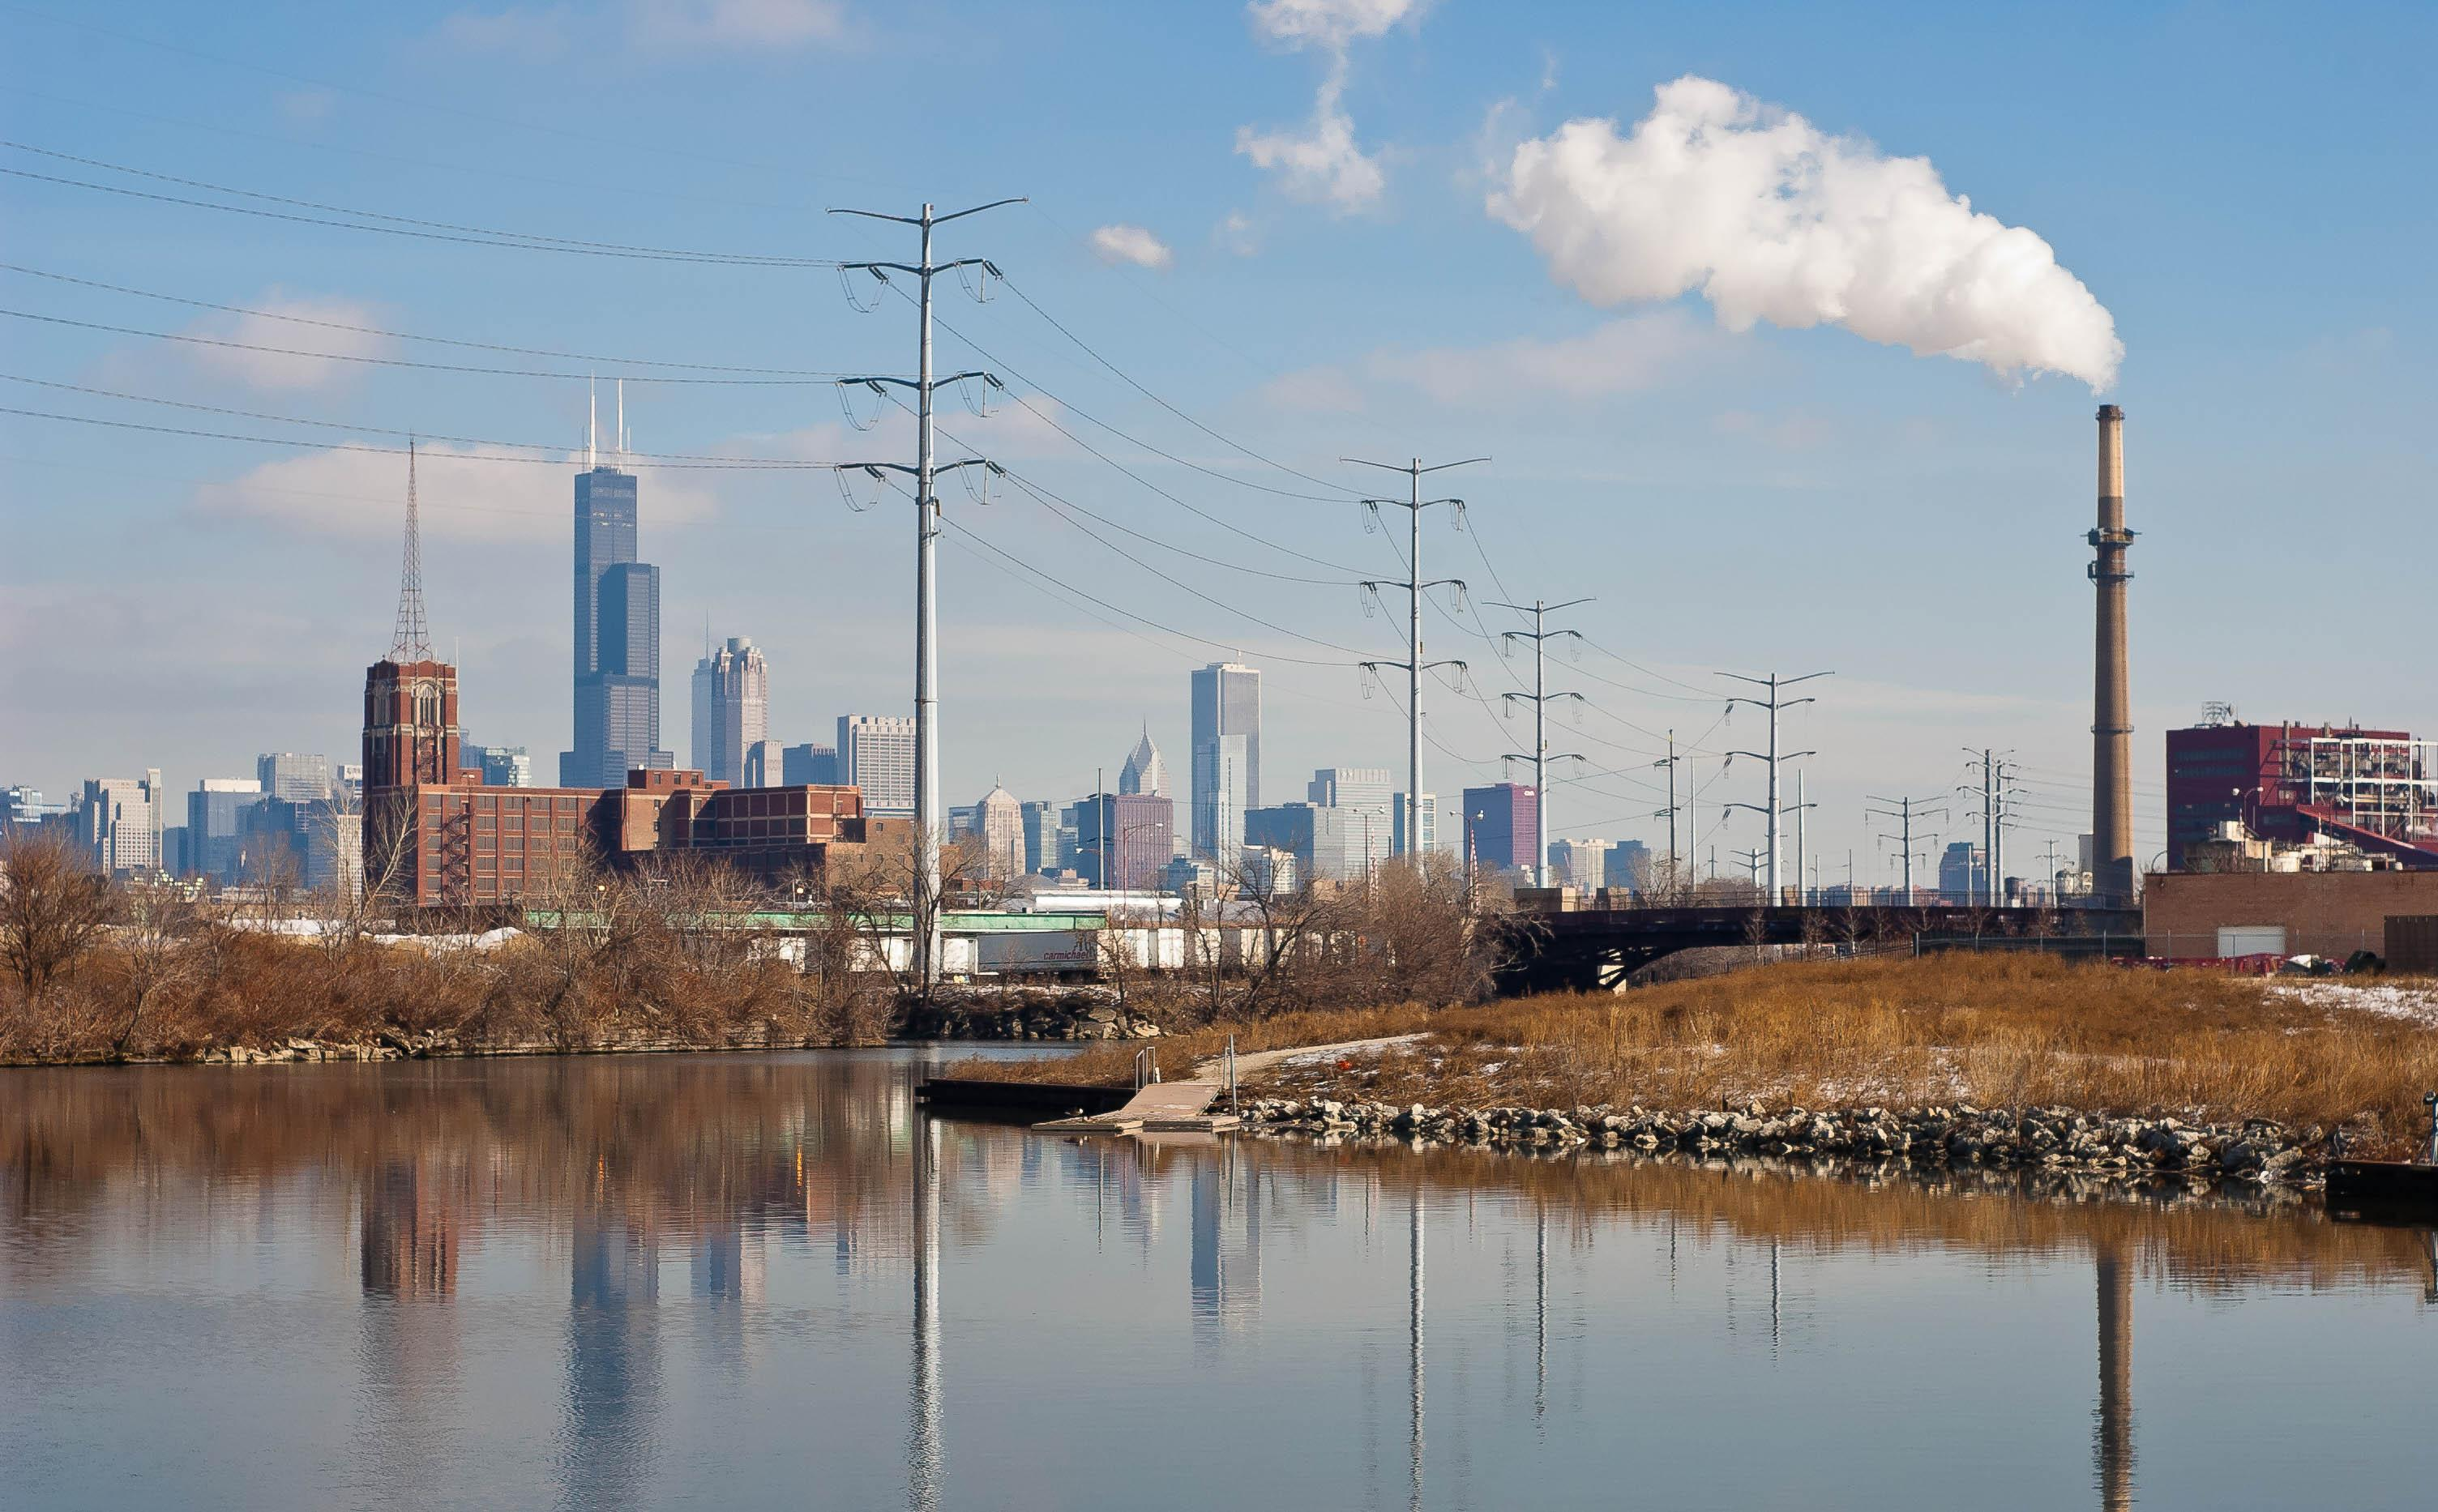 Experts say proposed cuts to the EPA would affect Chicago communities already impacted by pollution and other environmental threats. (Jeremy Atherton / Wikimedia Commons)